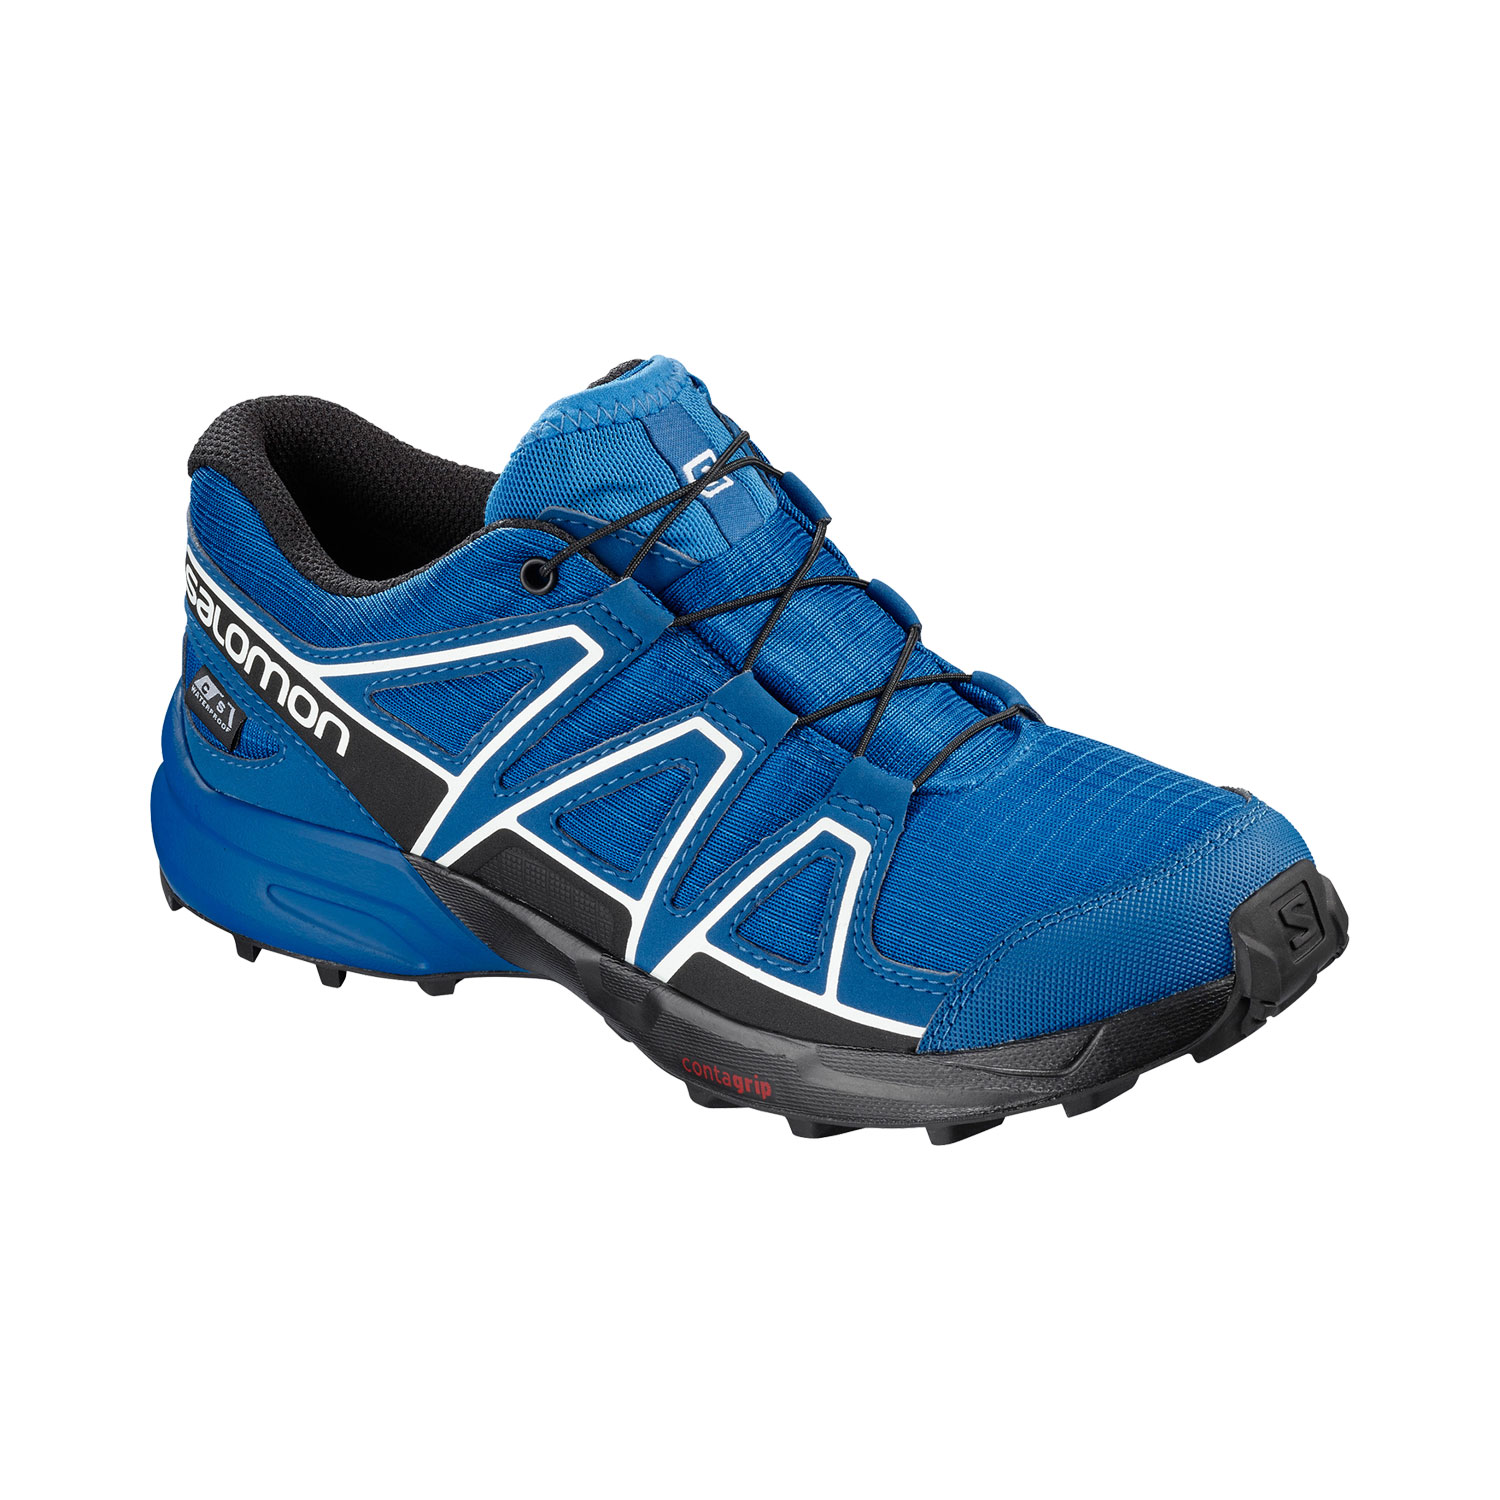 Salomon Speedcross CSWP J Kinder Trail Laufschuhe